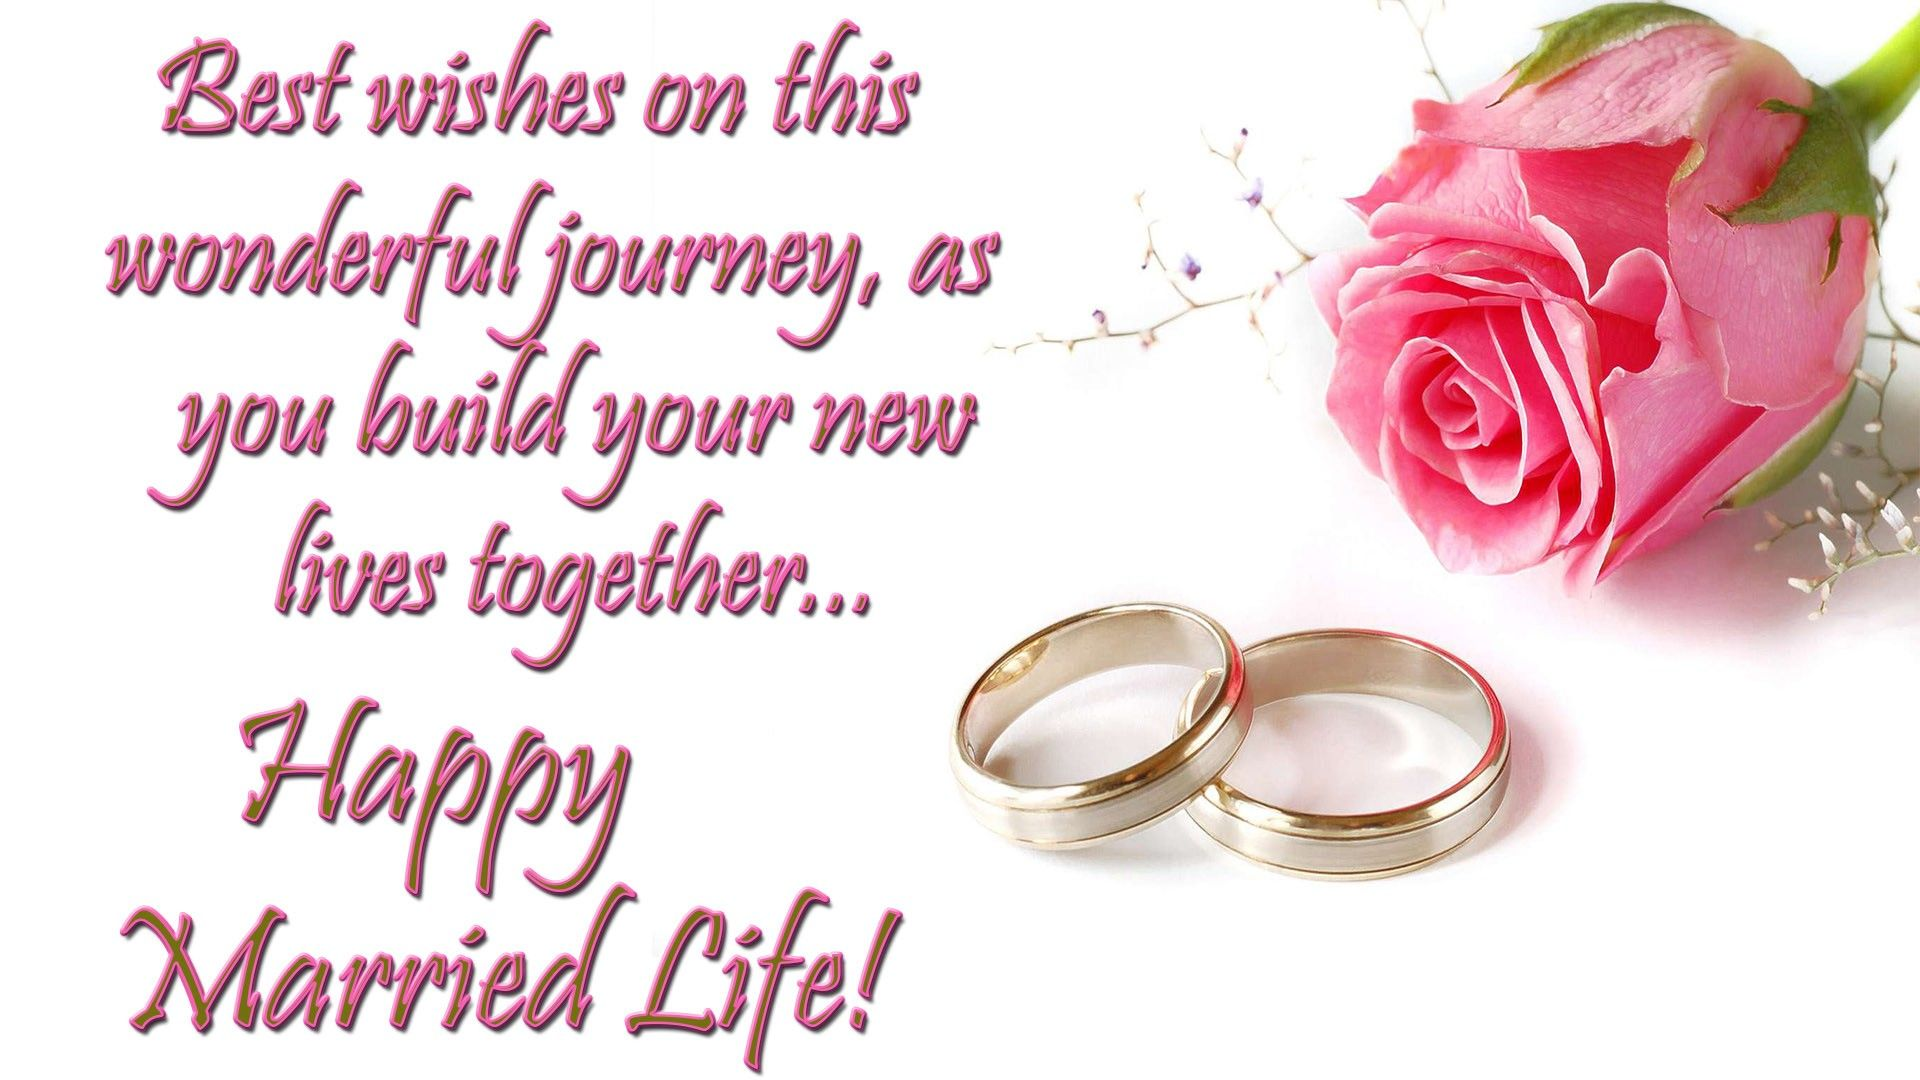 Pin by Nipa Rashmi on good wishes Happy married life